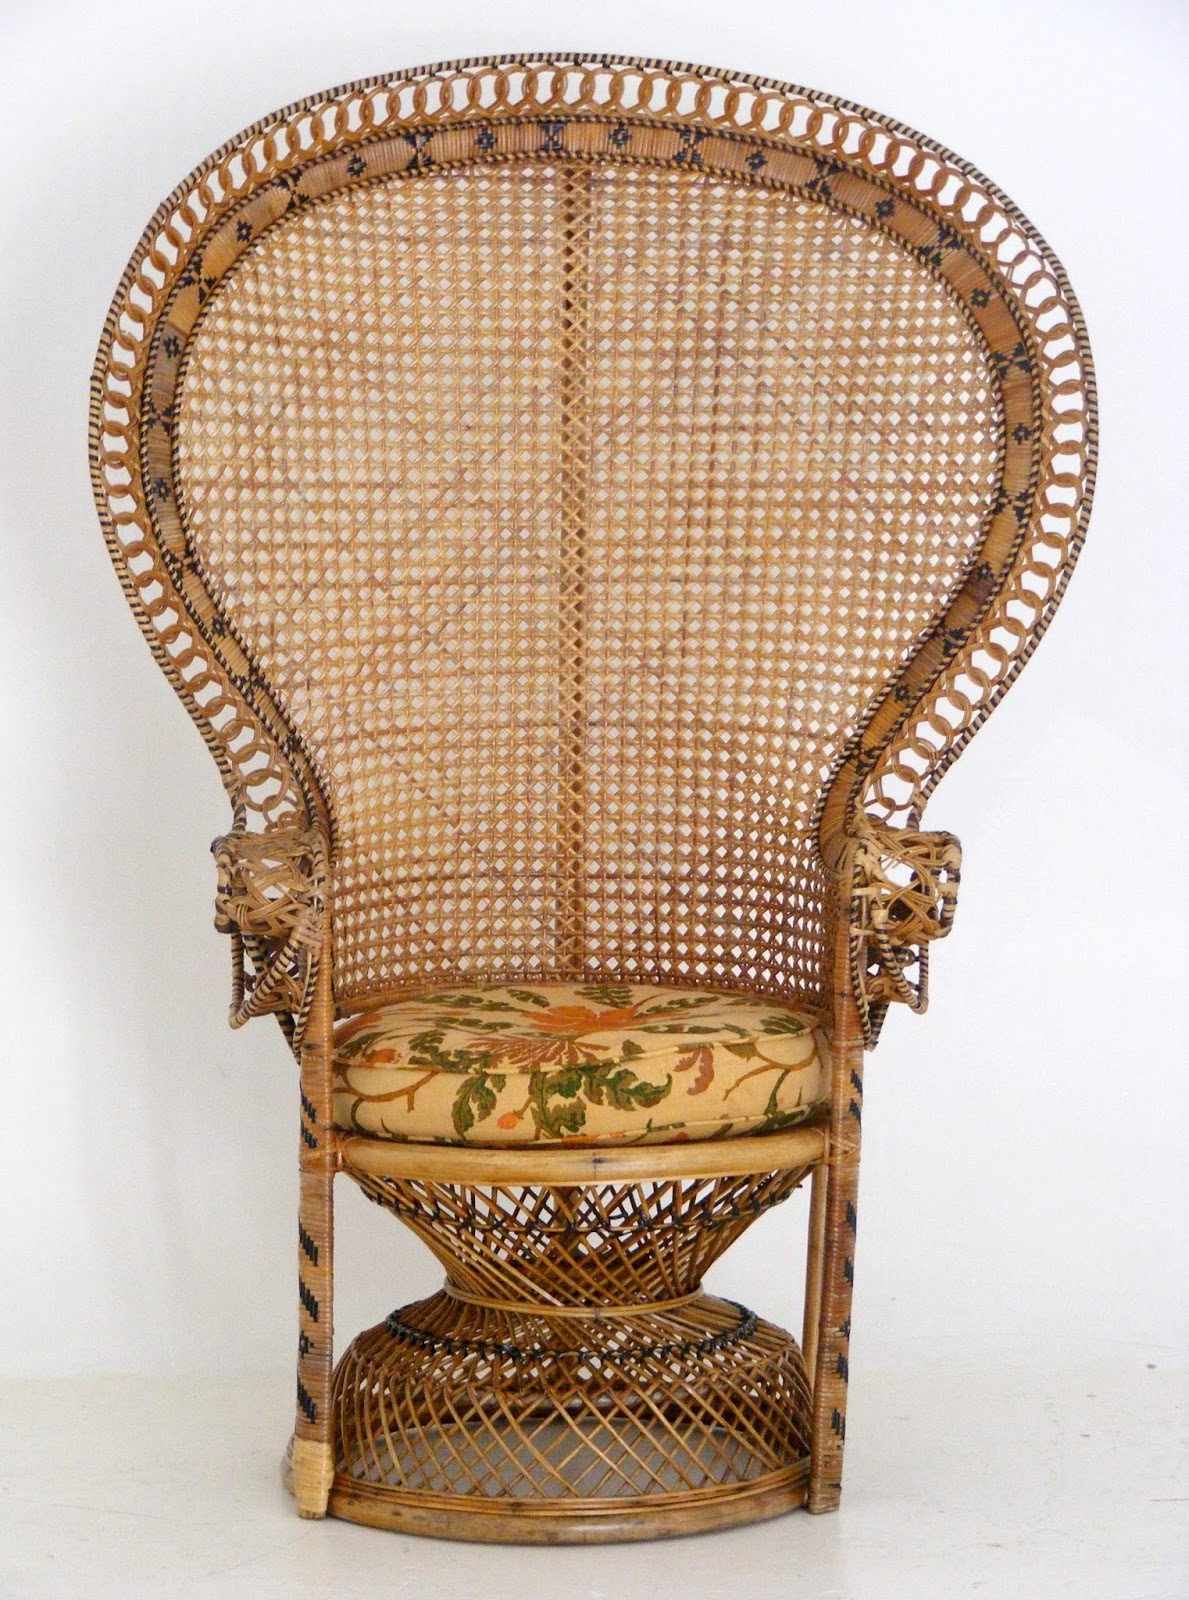 Vintage Peacock Chair Office Chairs With Adjustable Arms Vamp Furniture A At 22